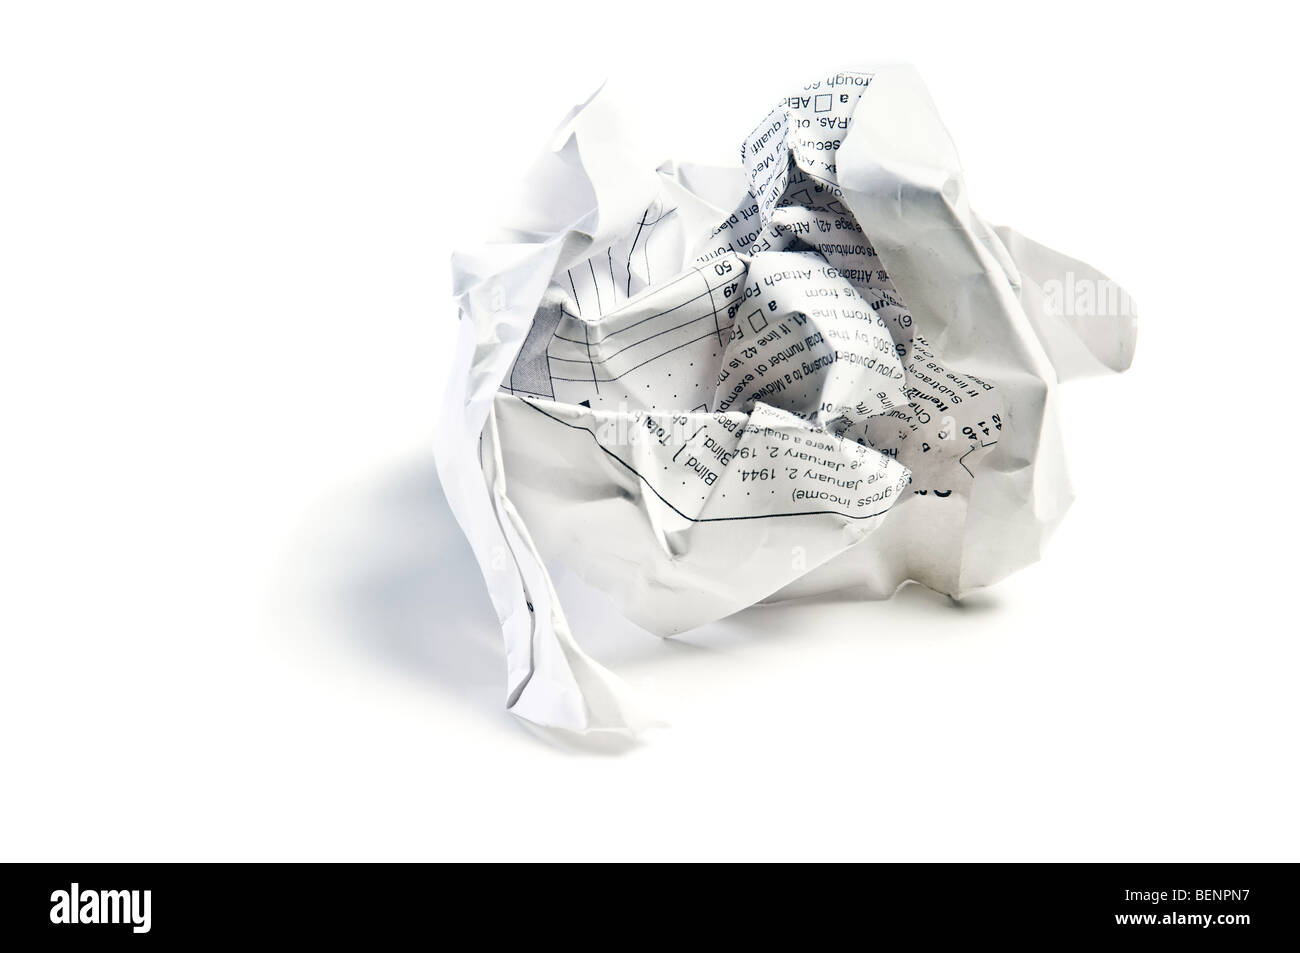 Closeup of a crumpled paper isolated on white background - Stock Image